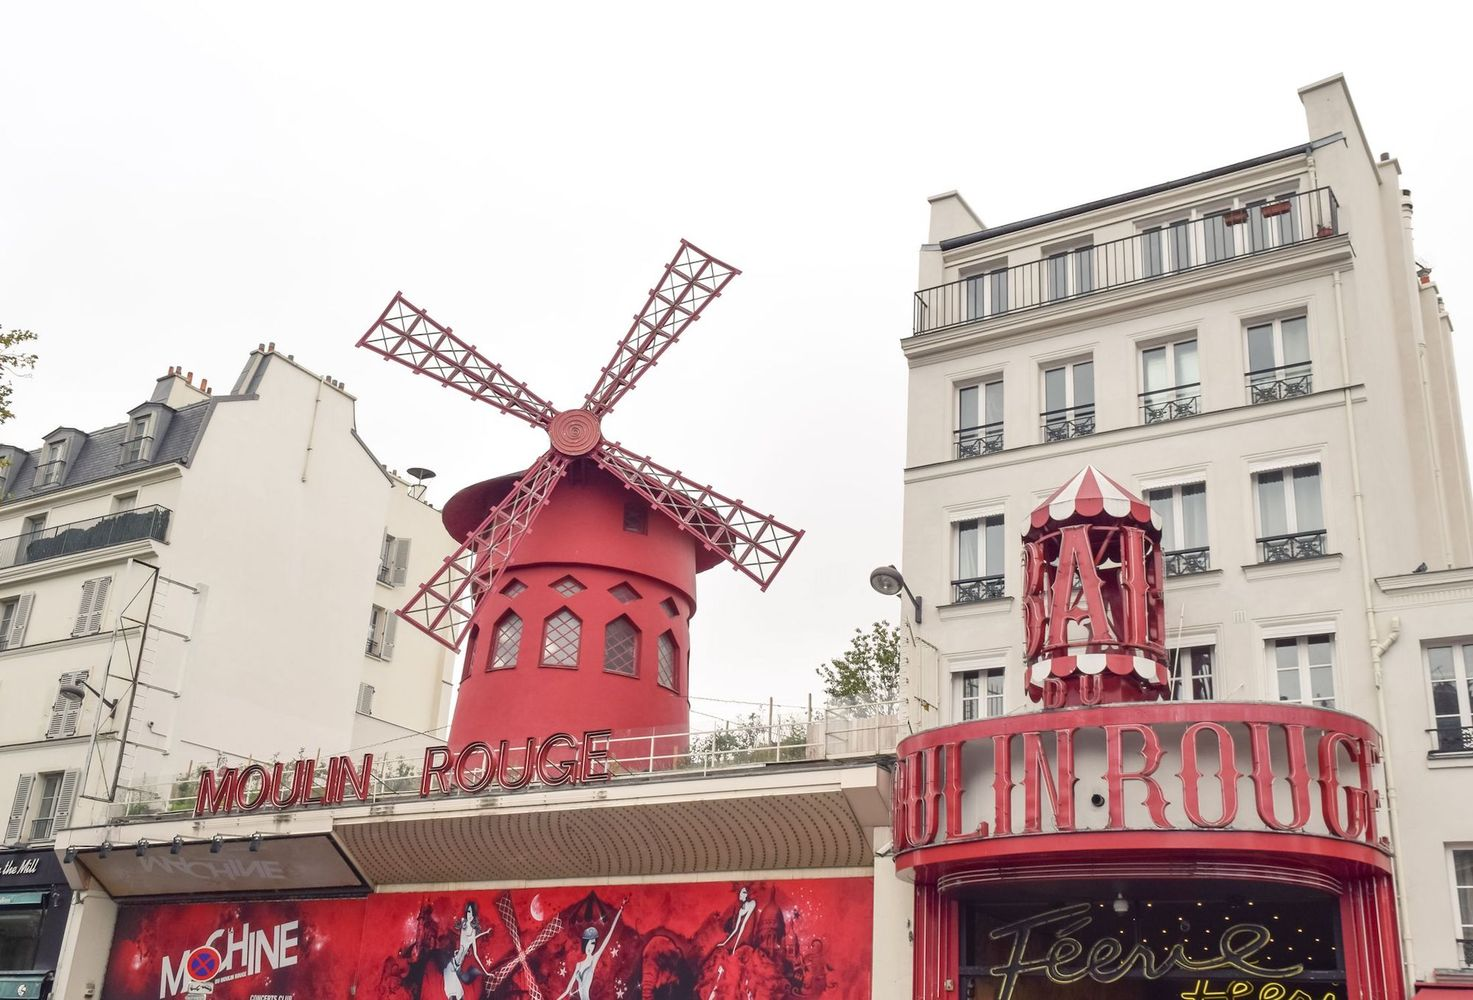 Things to do in Montmartre - Moulin Rouge, Paris